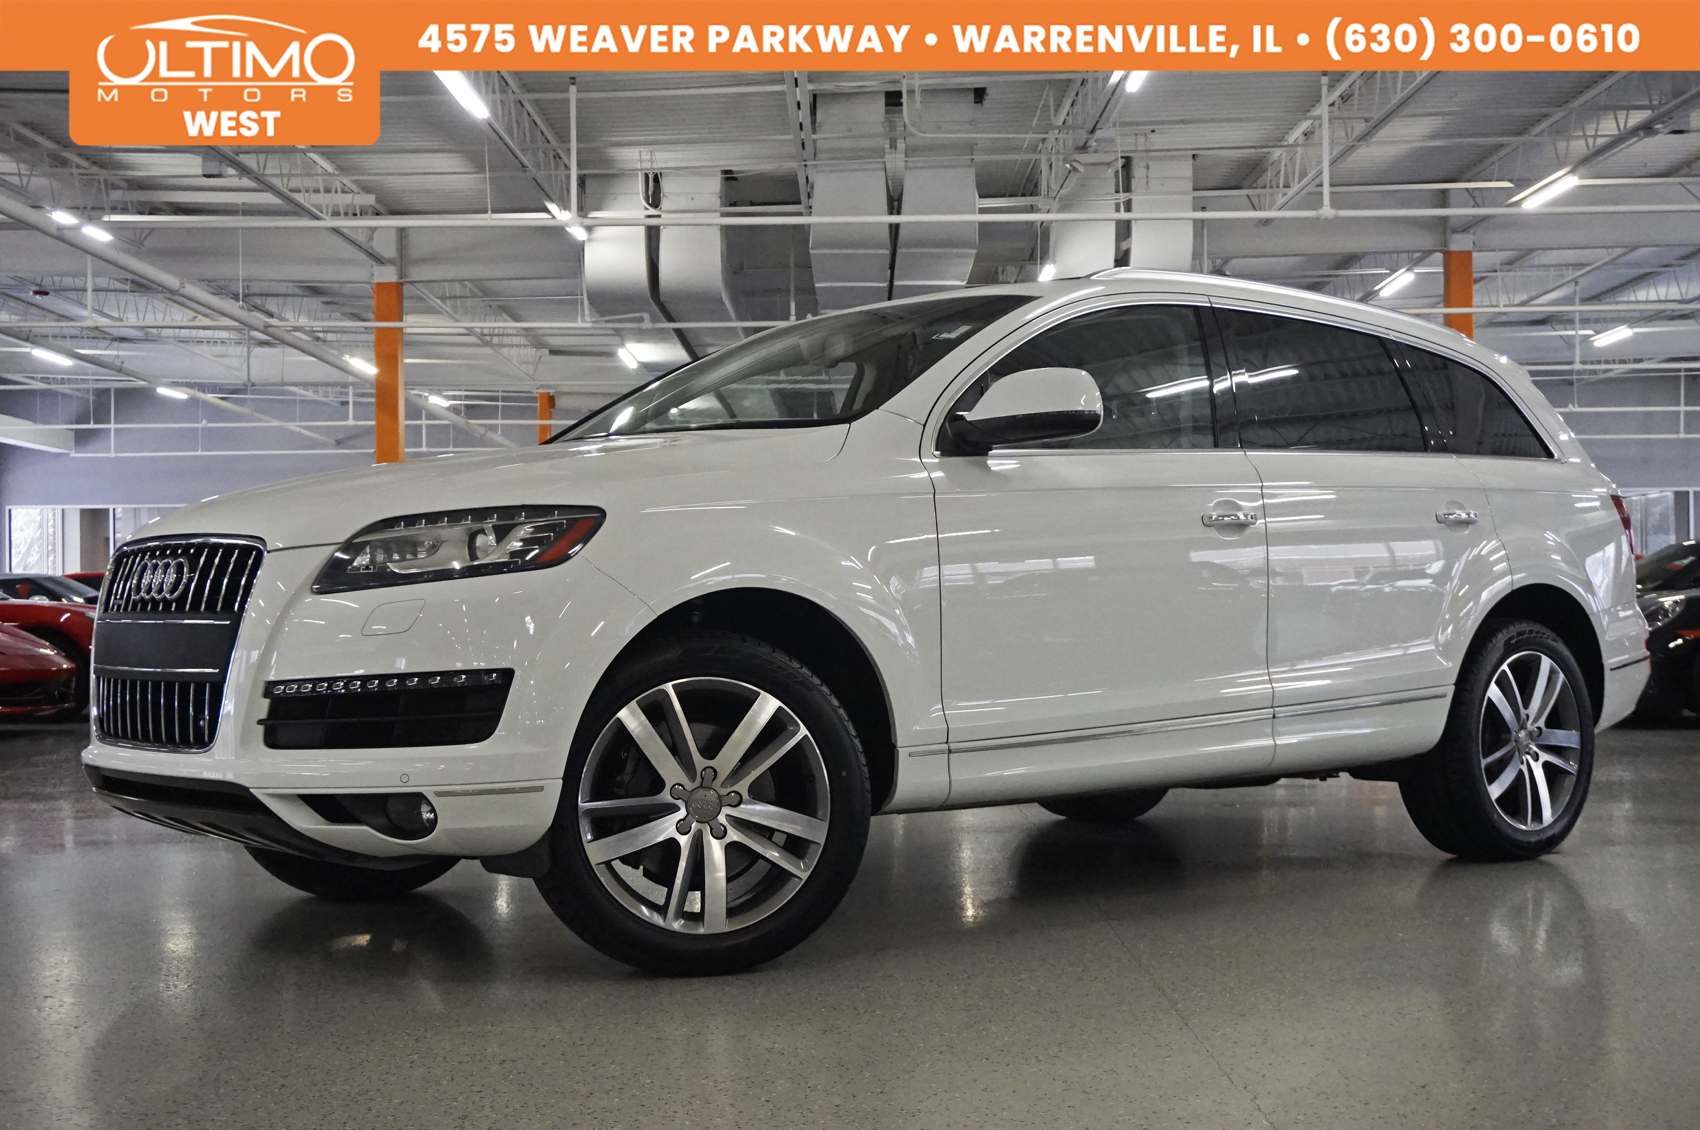 Pre-Owned 2014 Audi Q7 3.0T Premium Plus Warm Weather-pkg/20-Wheels, 1-Owner